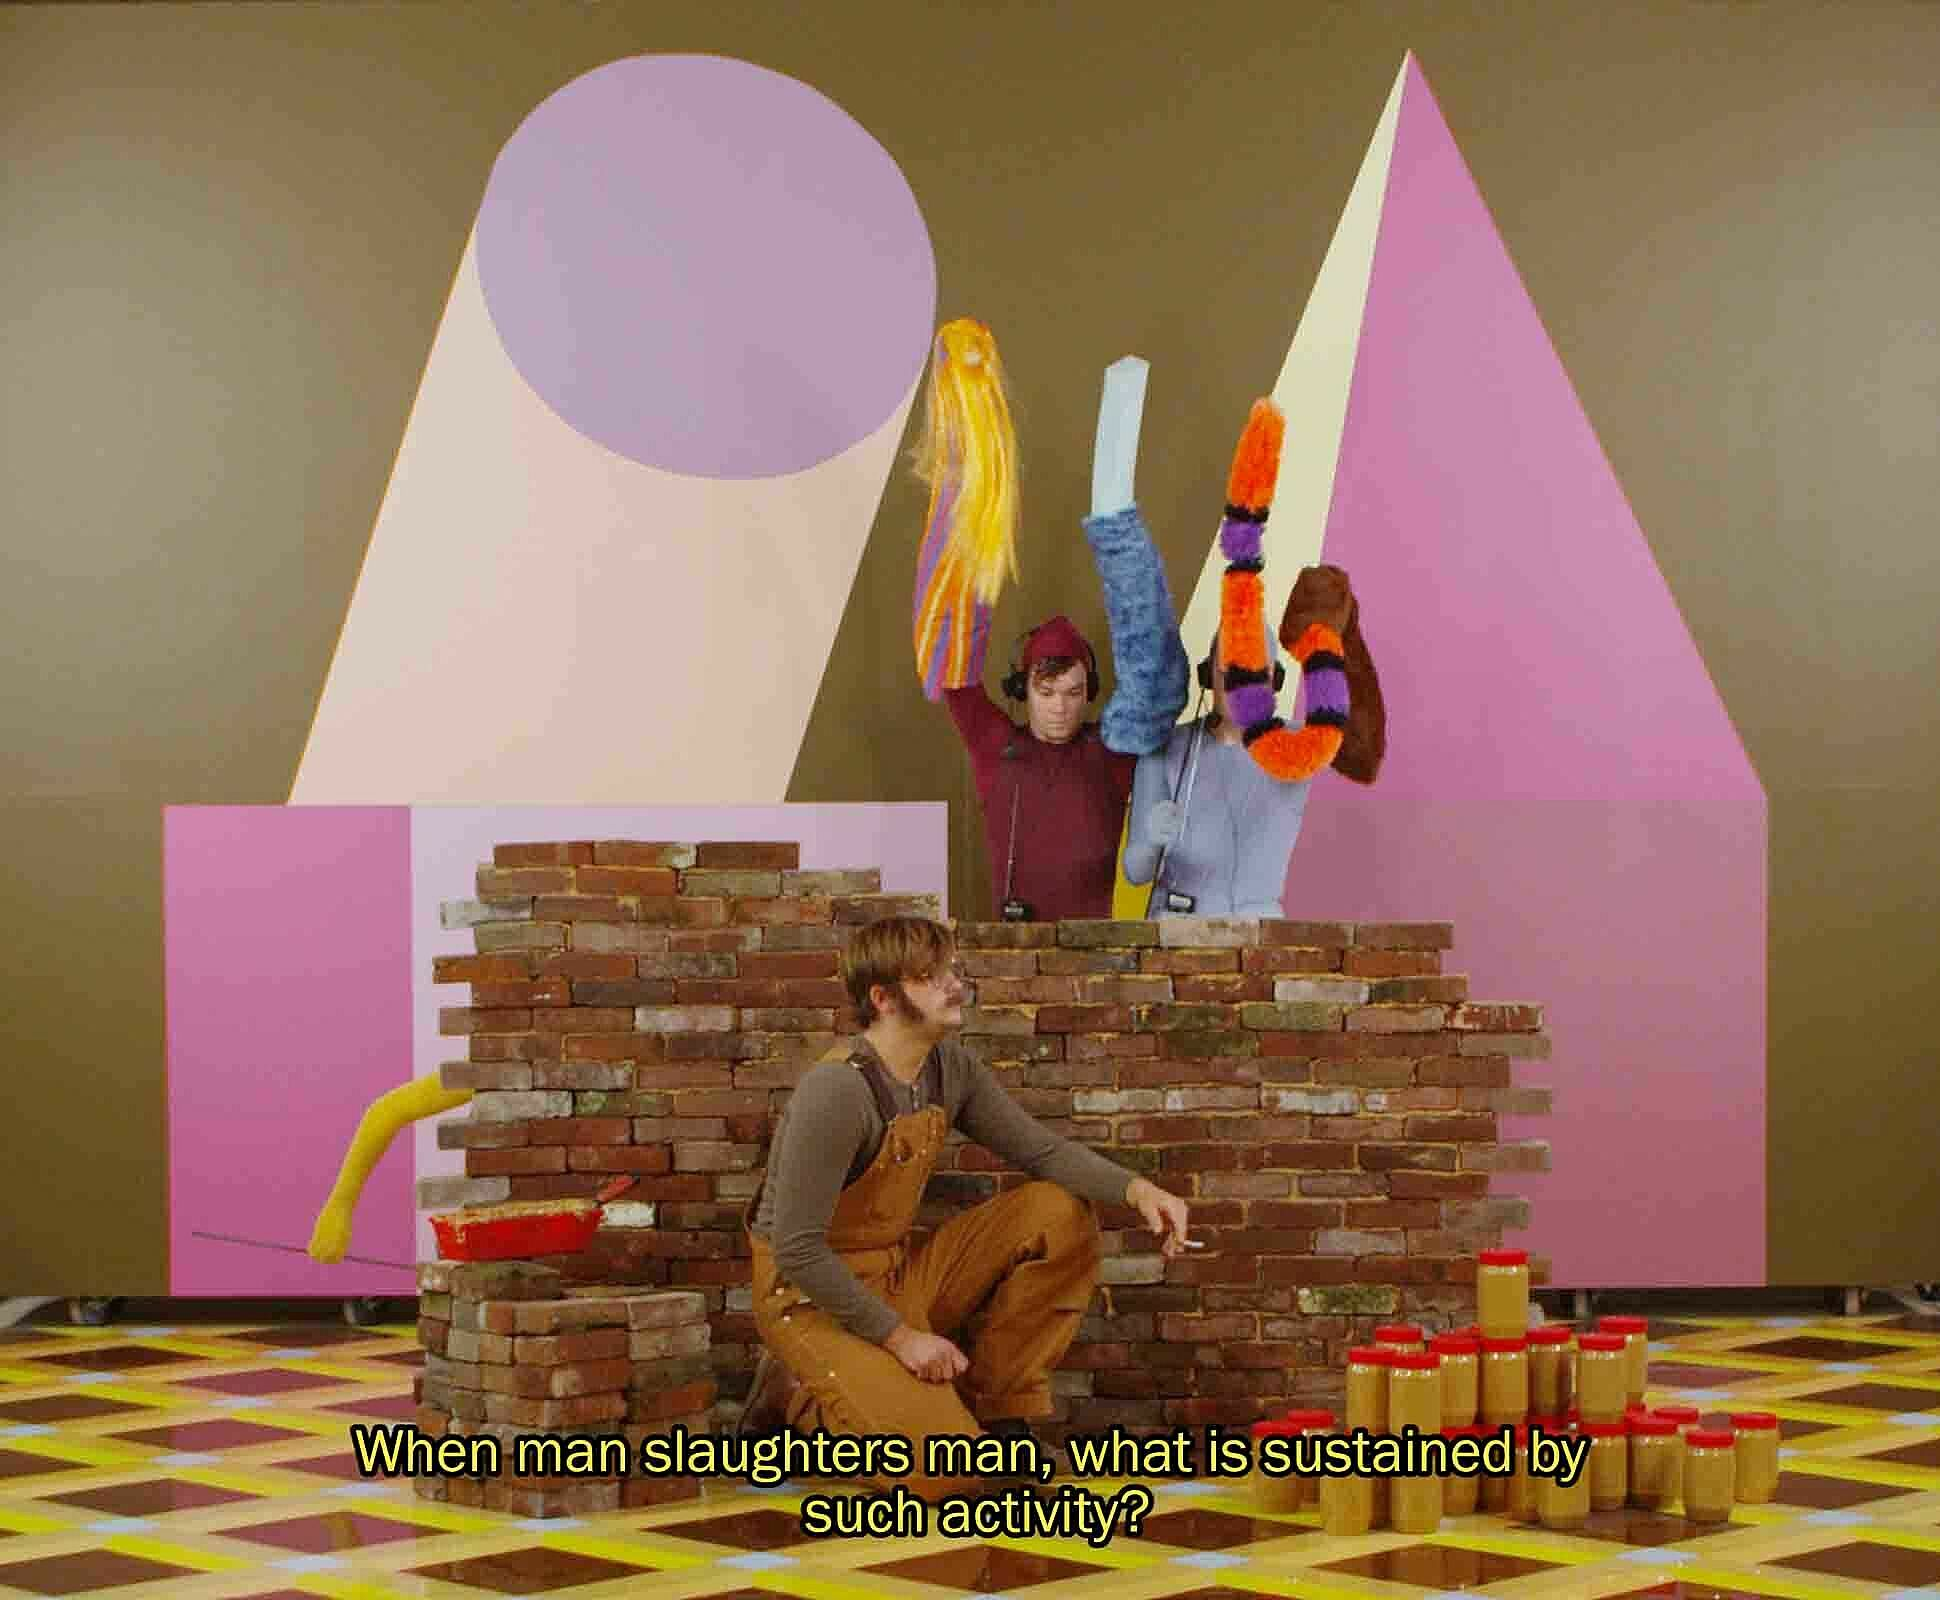 A still from a film work by Alex Da Corte. Three figures stage a puppet show in a fantasy landscape